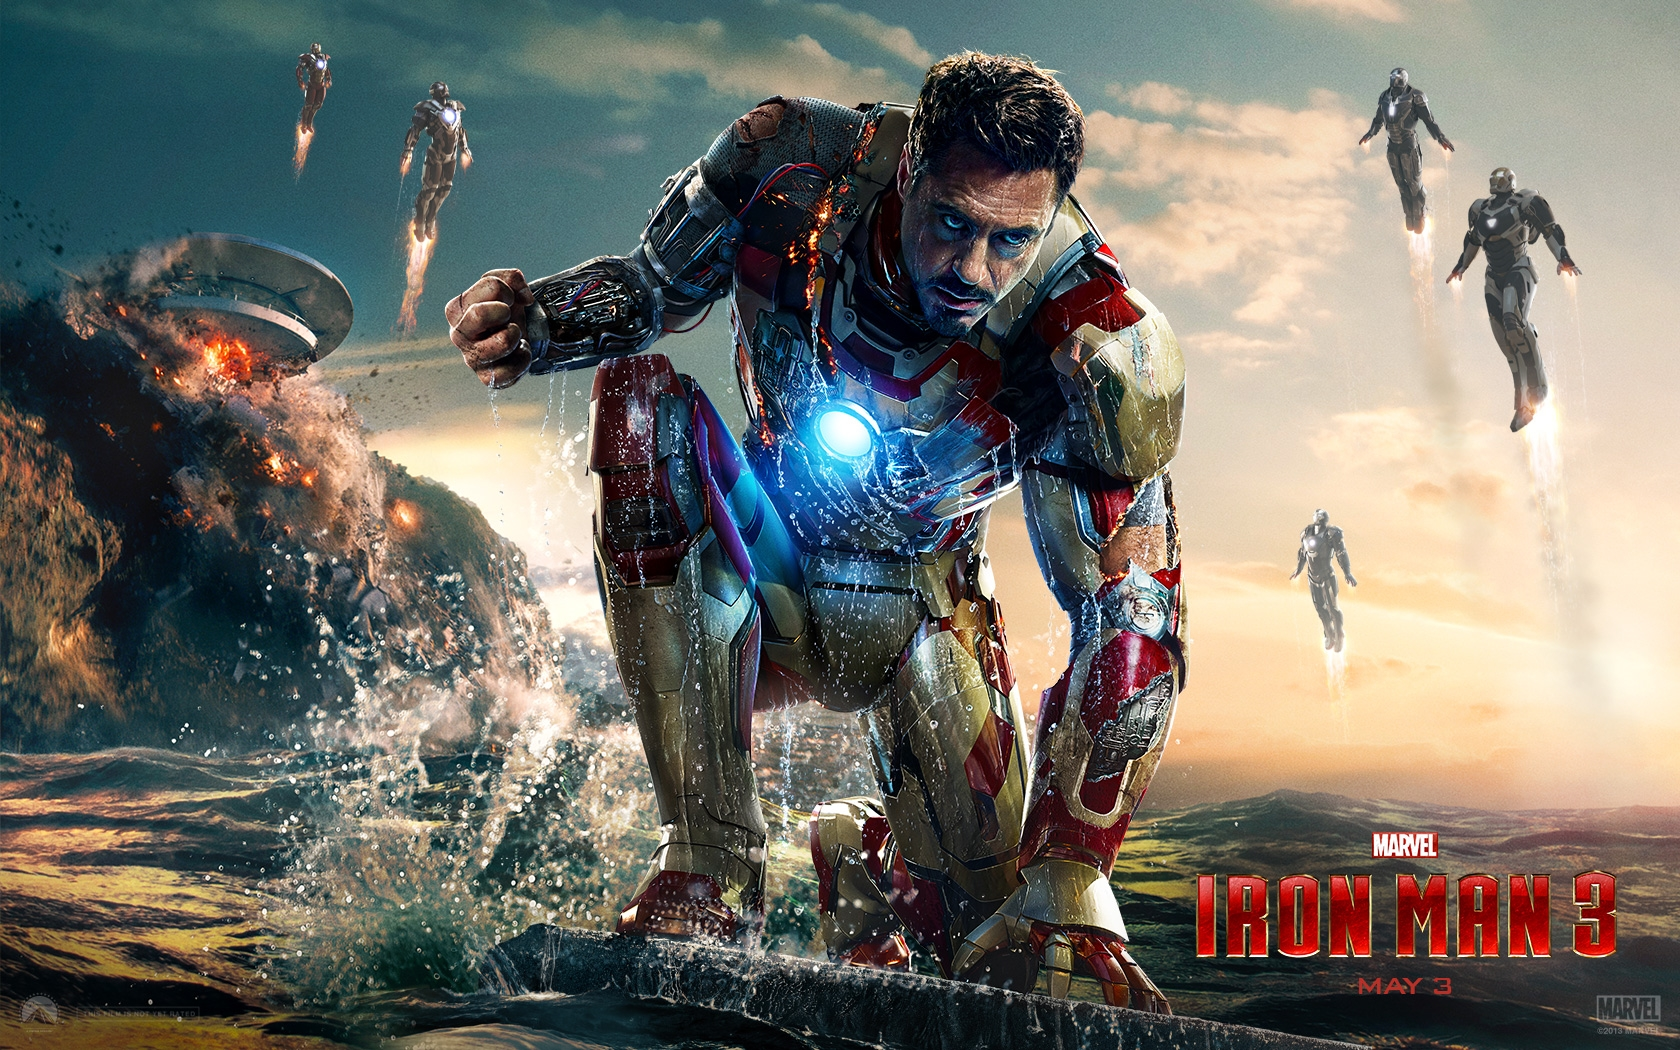 iron man 3 movie wide